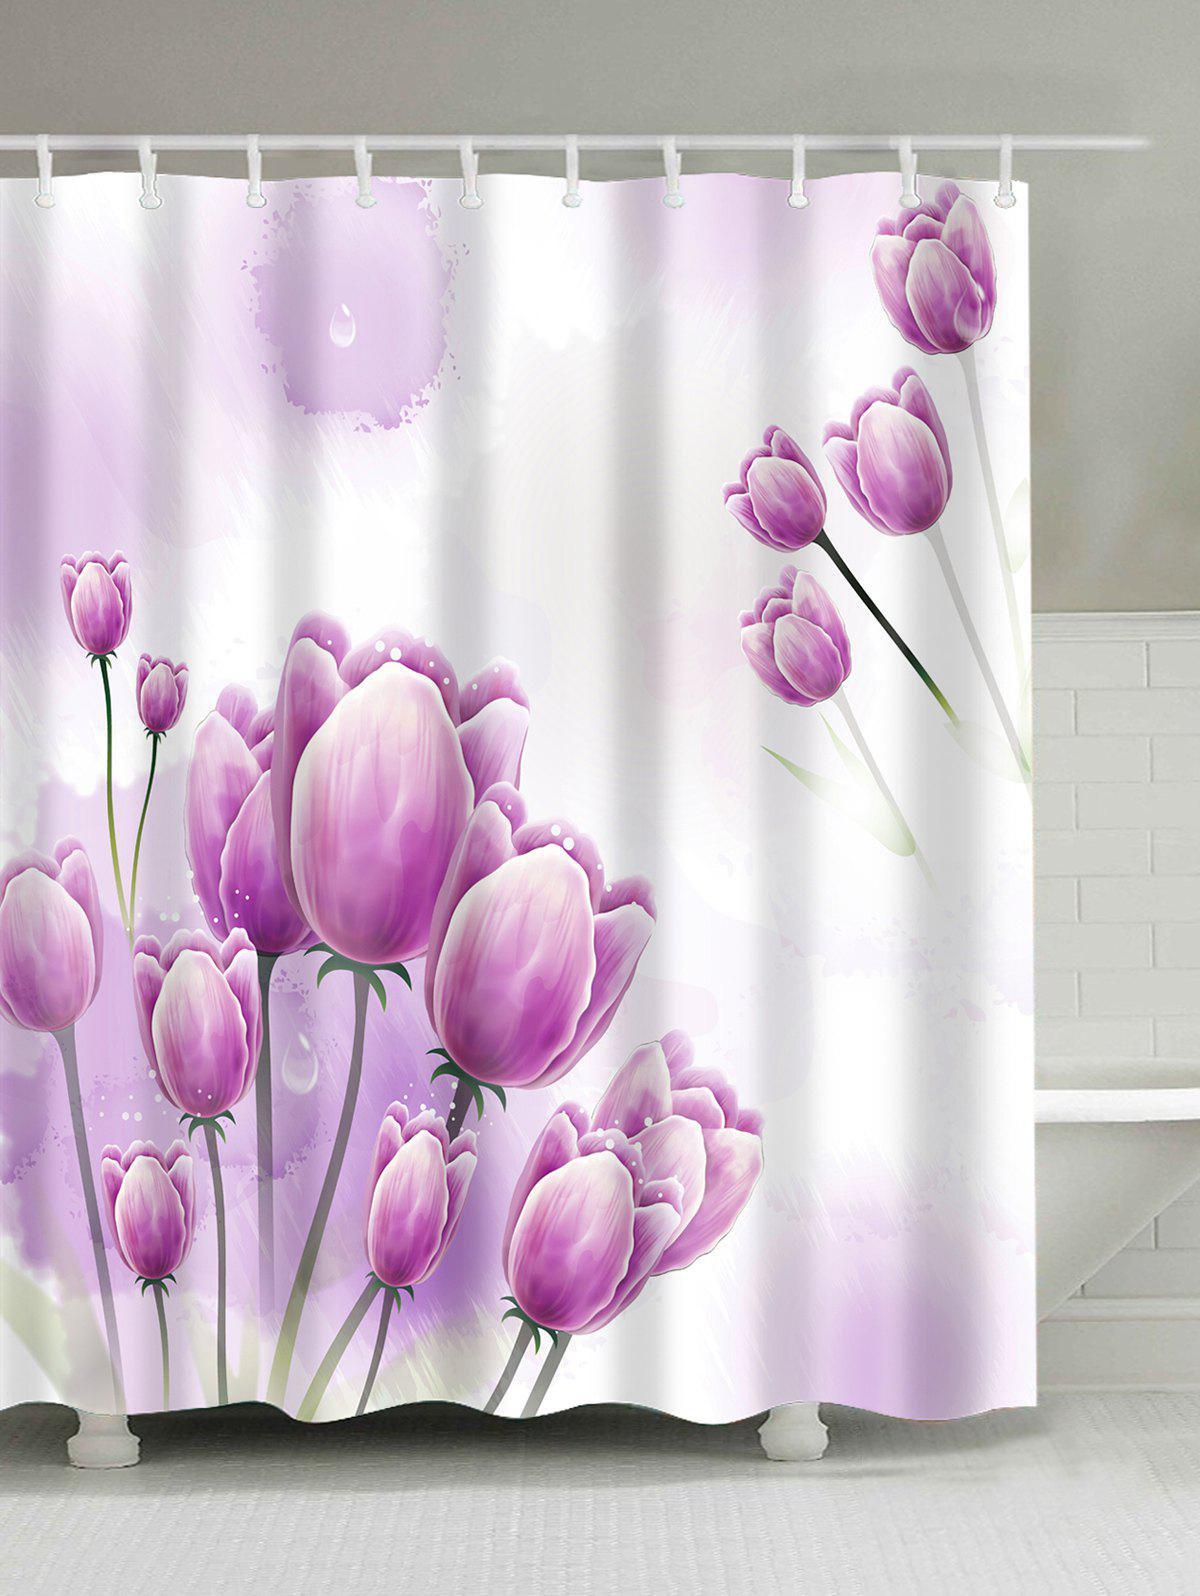 2018 Tulip Floral Waterproof Bathroom Shower Curtain PINK W INCH L ...